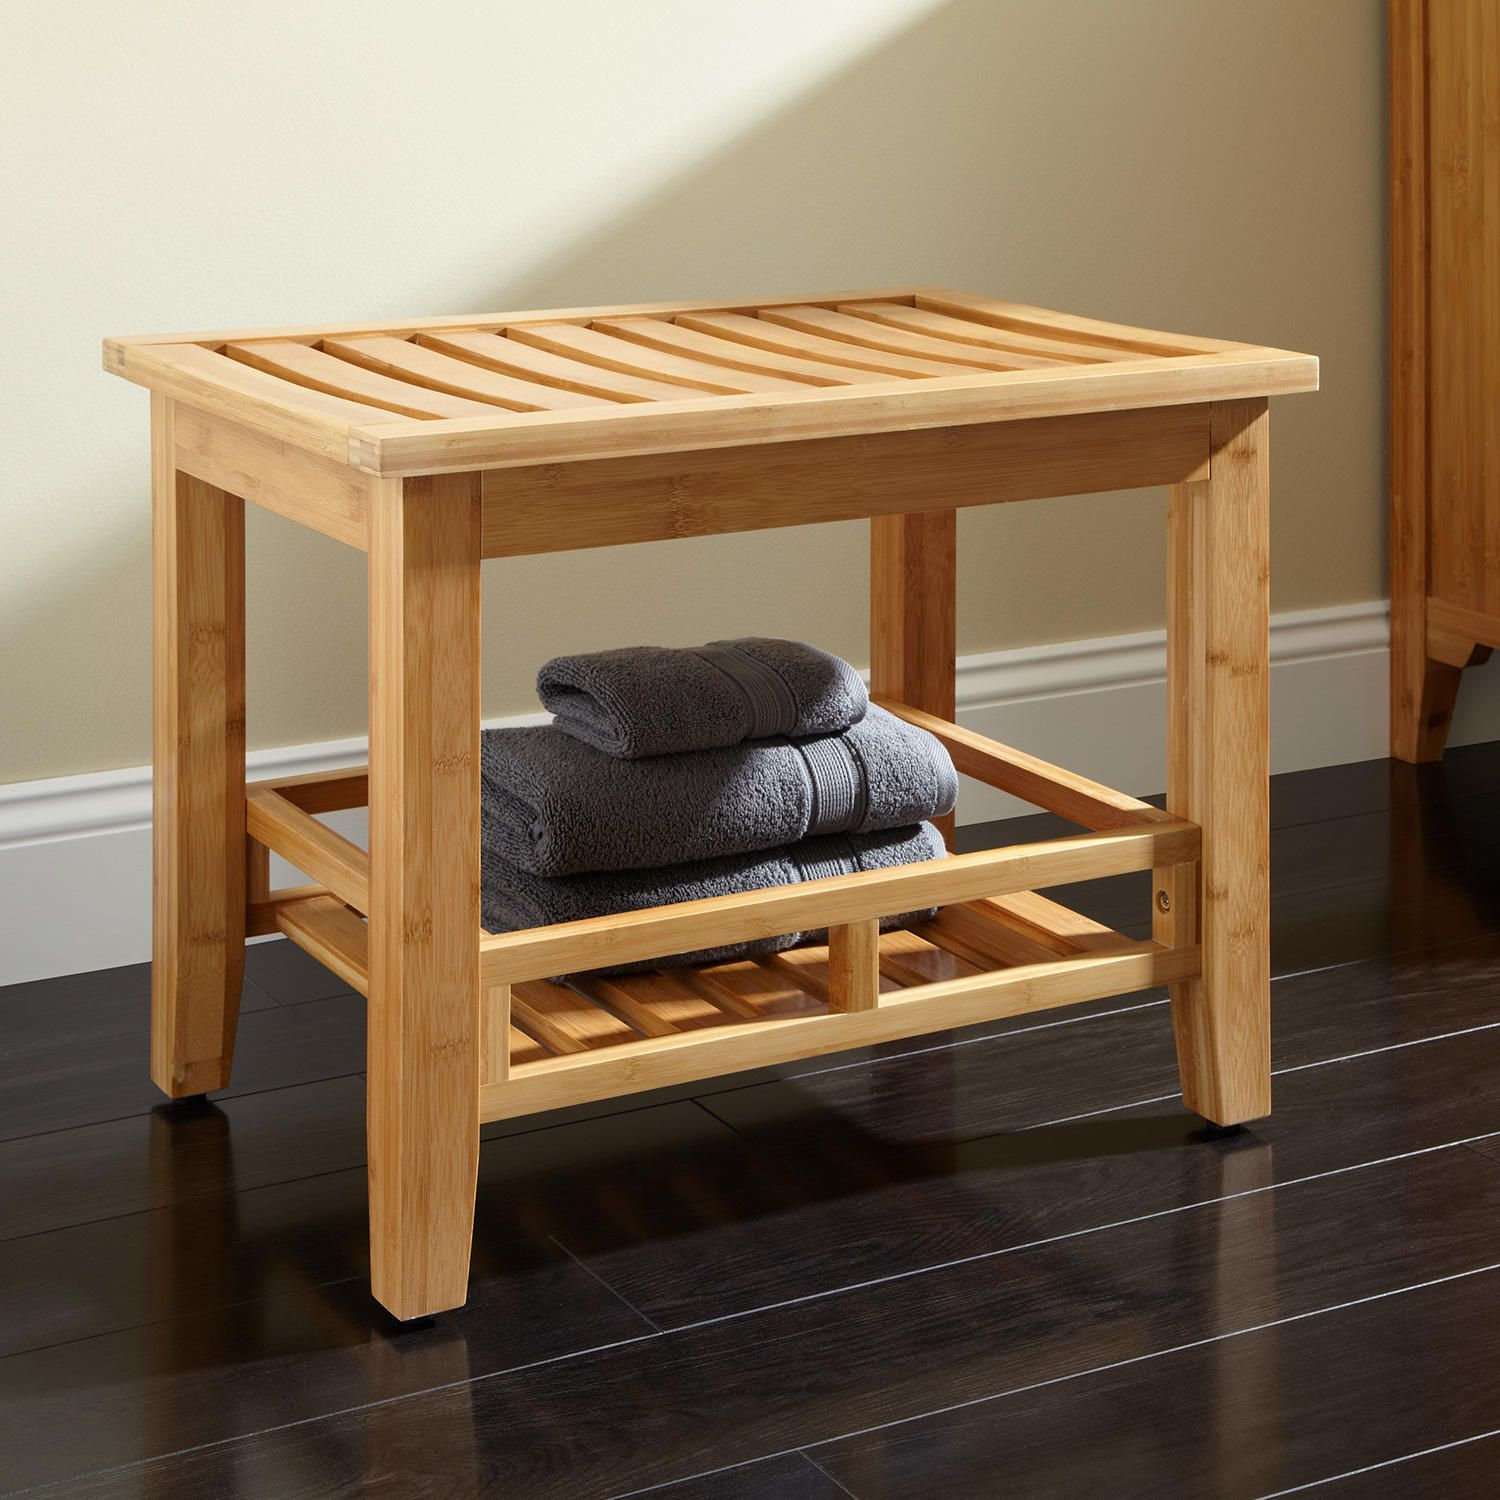 shoe wood low small elegant with upholstered benches baskets entryway bedroom underneath cute of furniture bench long bathroom bathro seat storage